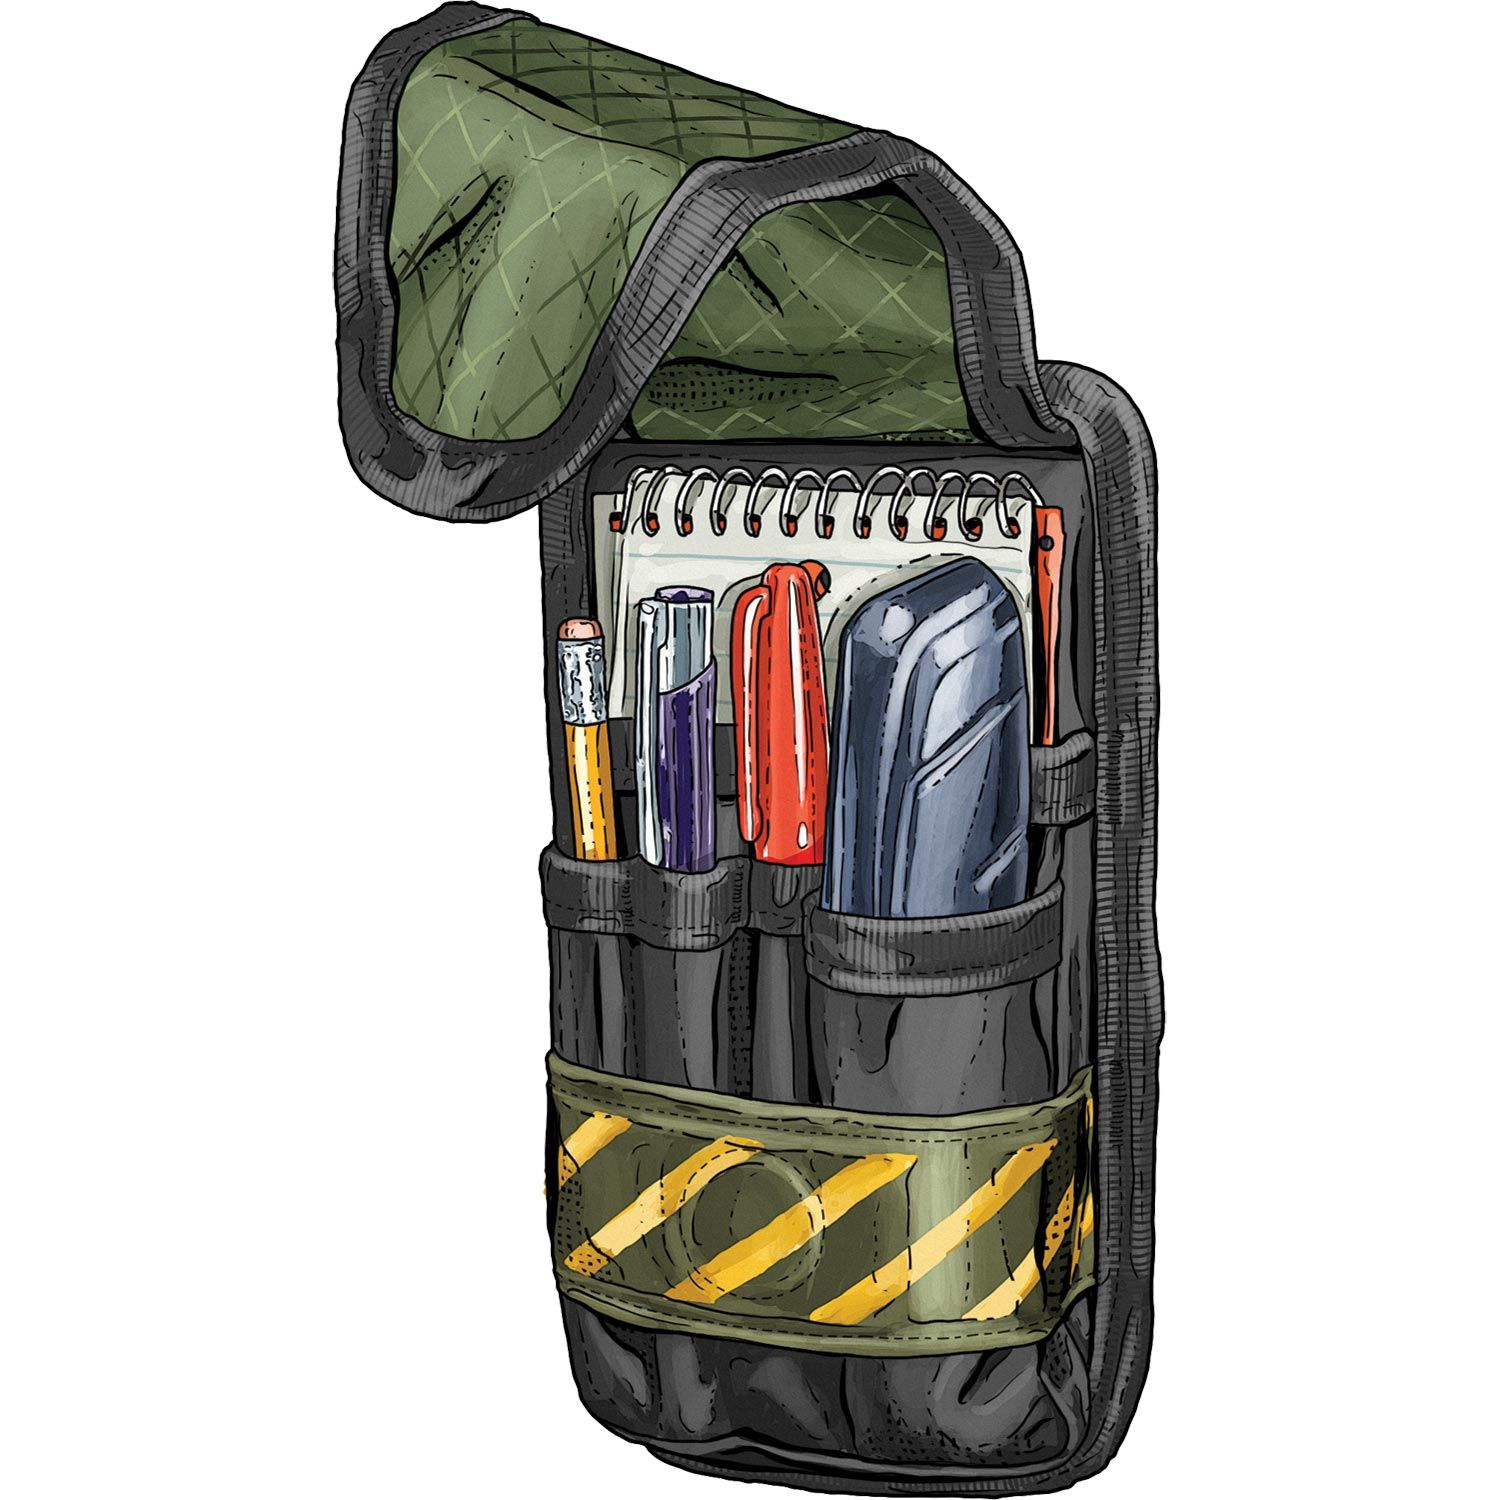 With space for a utility knife, marker, spiral pad and small complement of tools, the Warehouse Pouch from Duluth Trading lets you carry essentials as you keep your hands free.